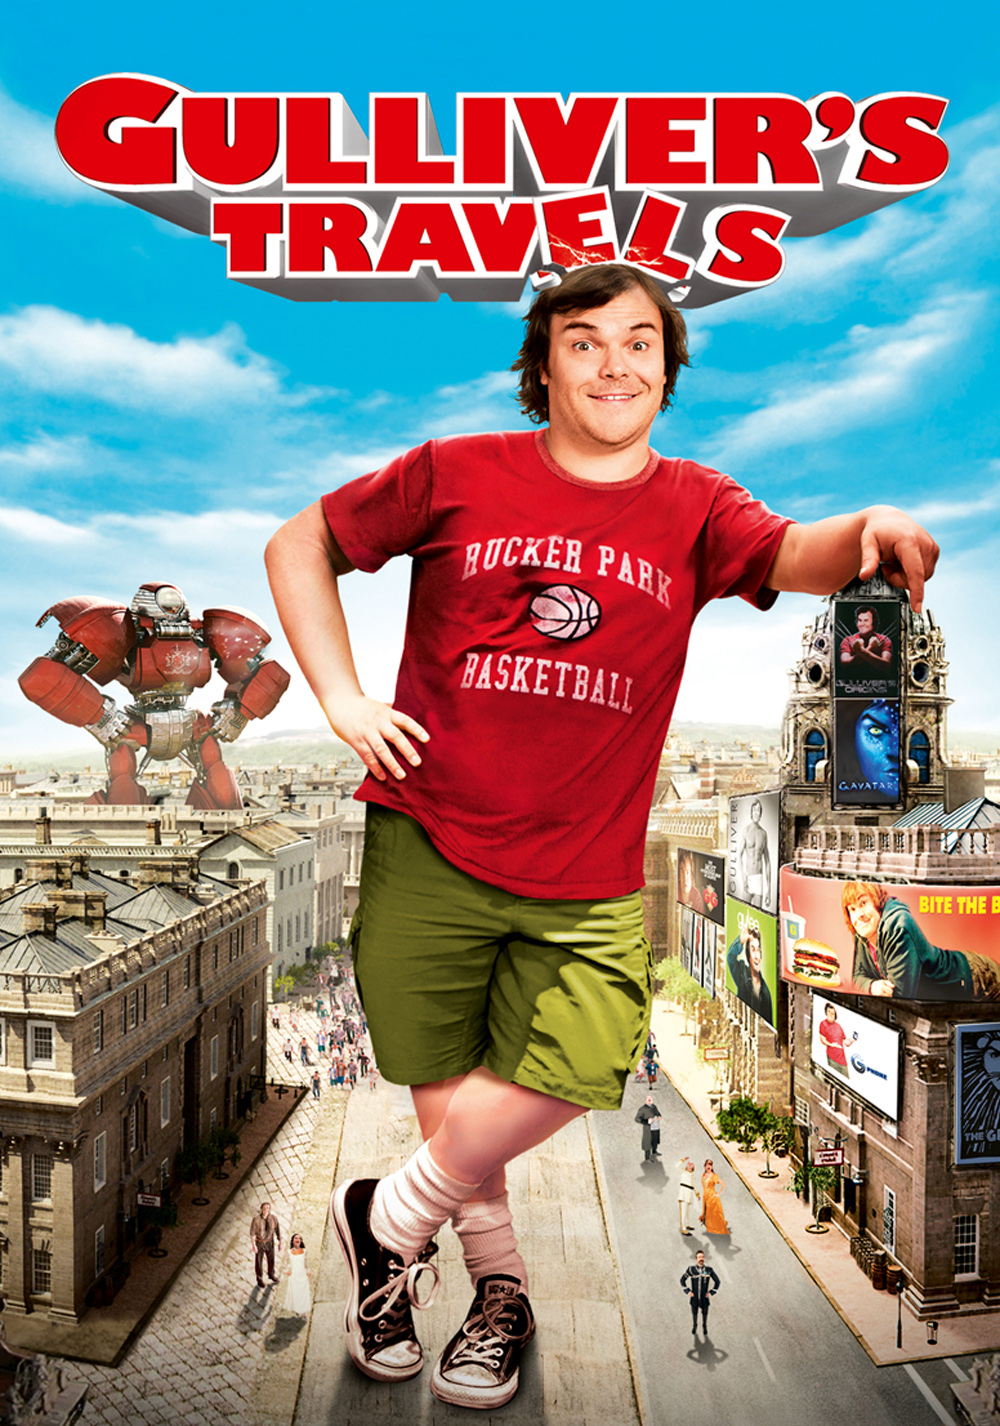 Nonton Film Gullivers Travels (2010)